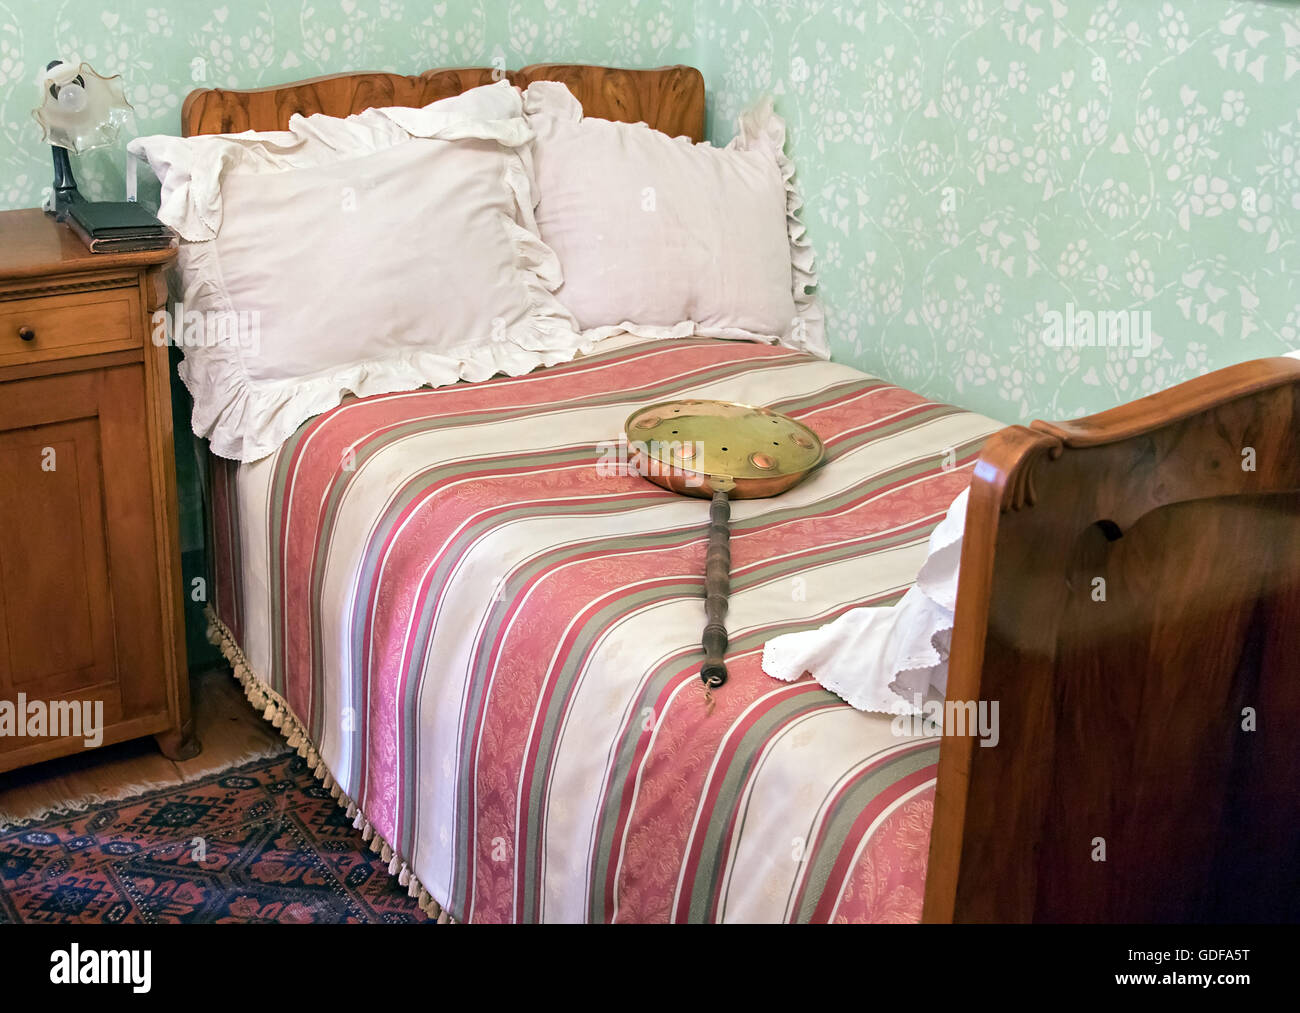 Bed Heater Bed Heater Stock Photos Bed Heater Stock Images Alamy